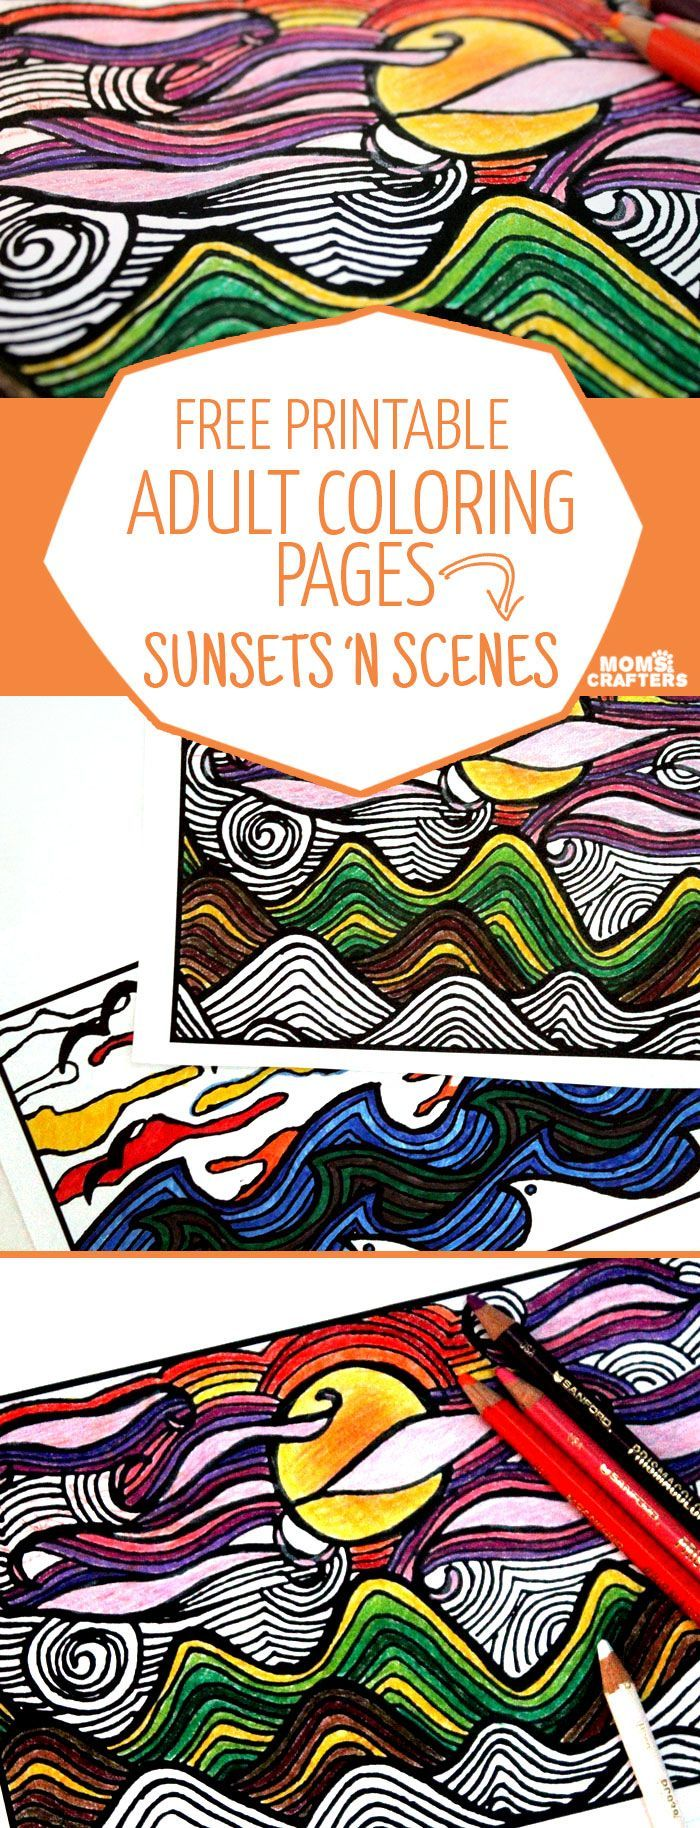 Free Printable Coloring Pages For Adults Sunsets N Scenes Adult